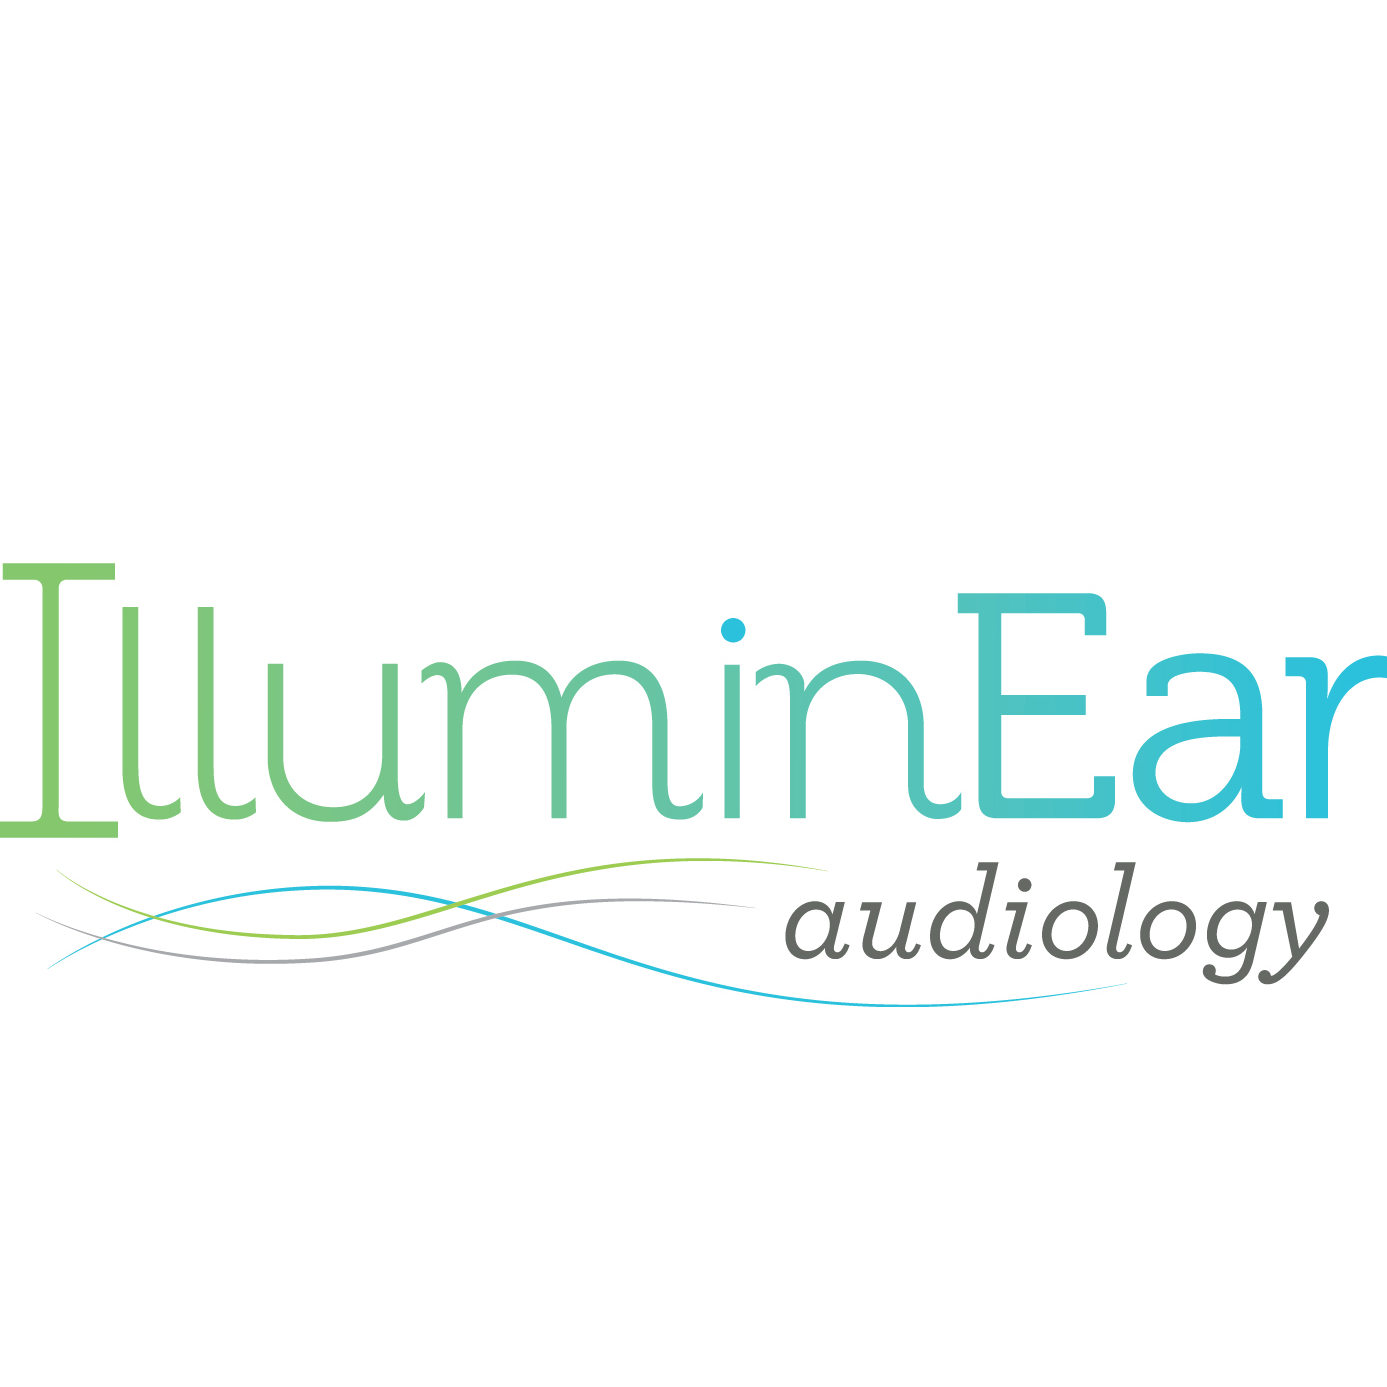 Illuminear Tinnitus & Audiology Center: Kristen, Keener, Au.D.